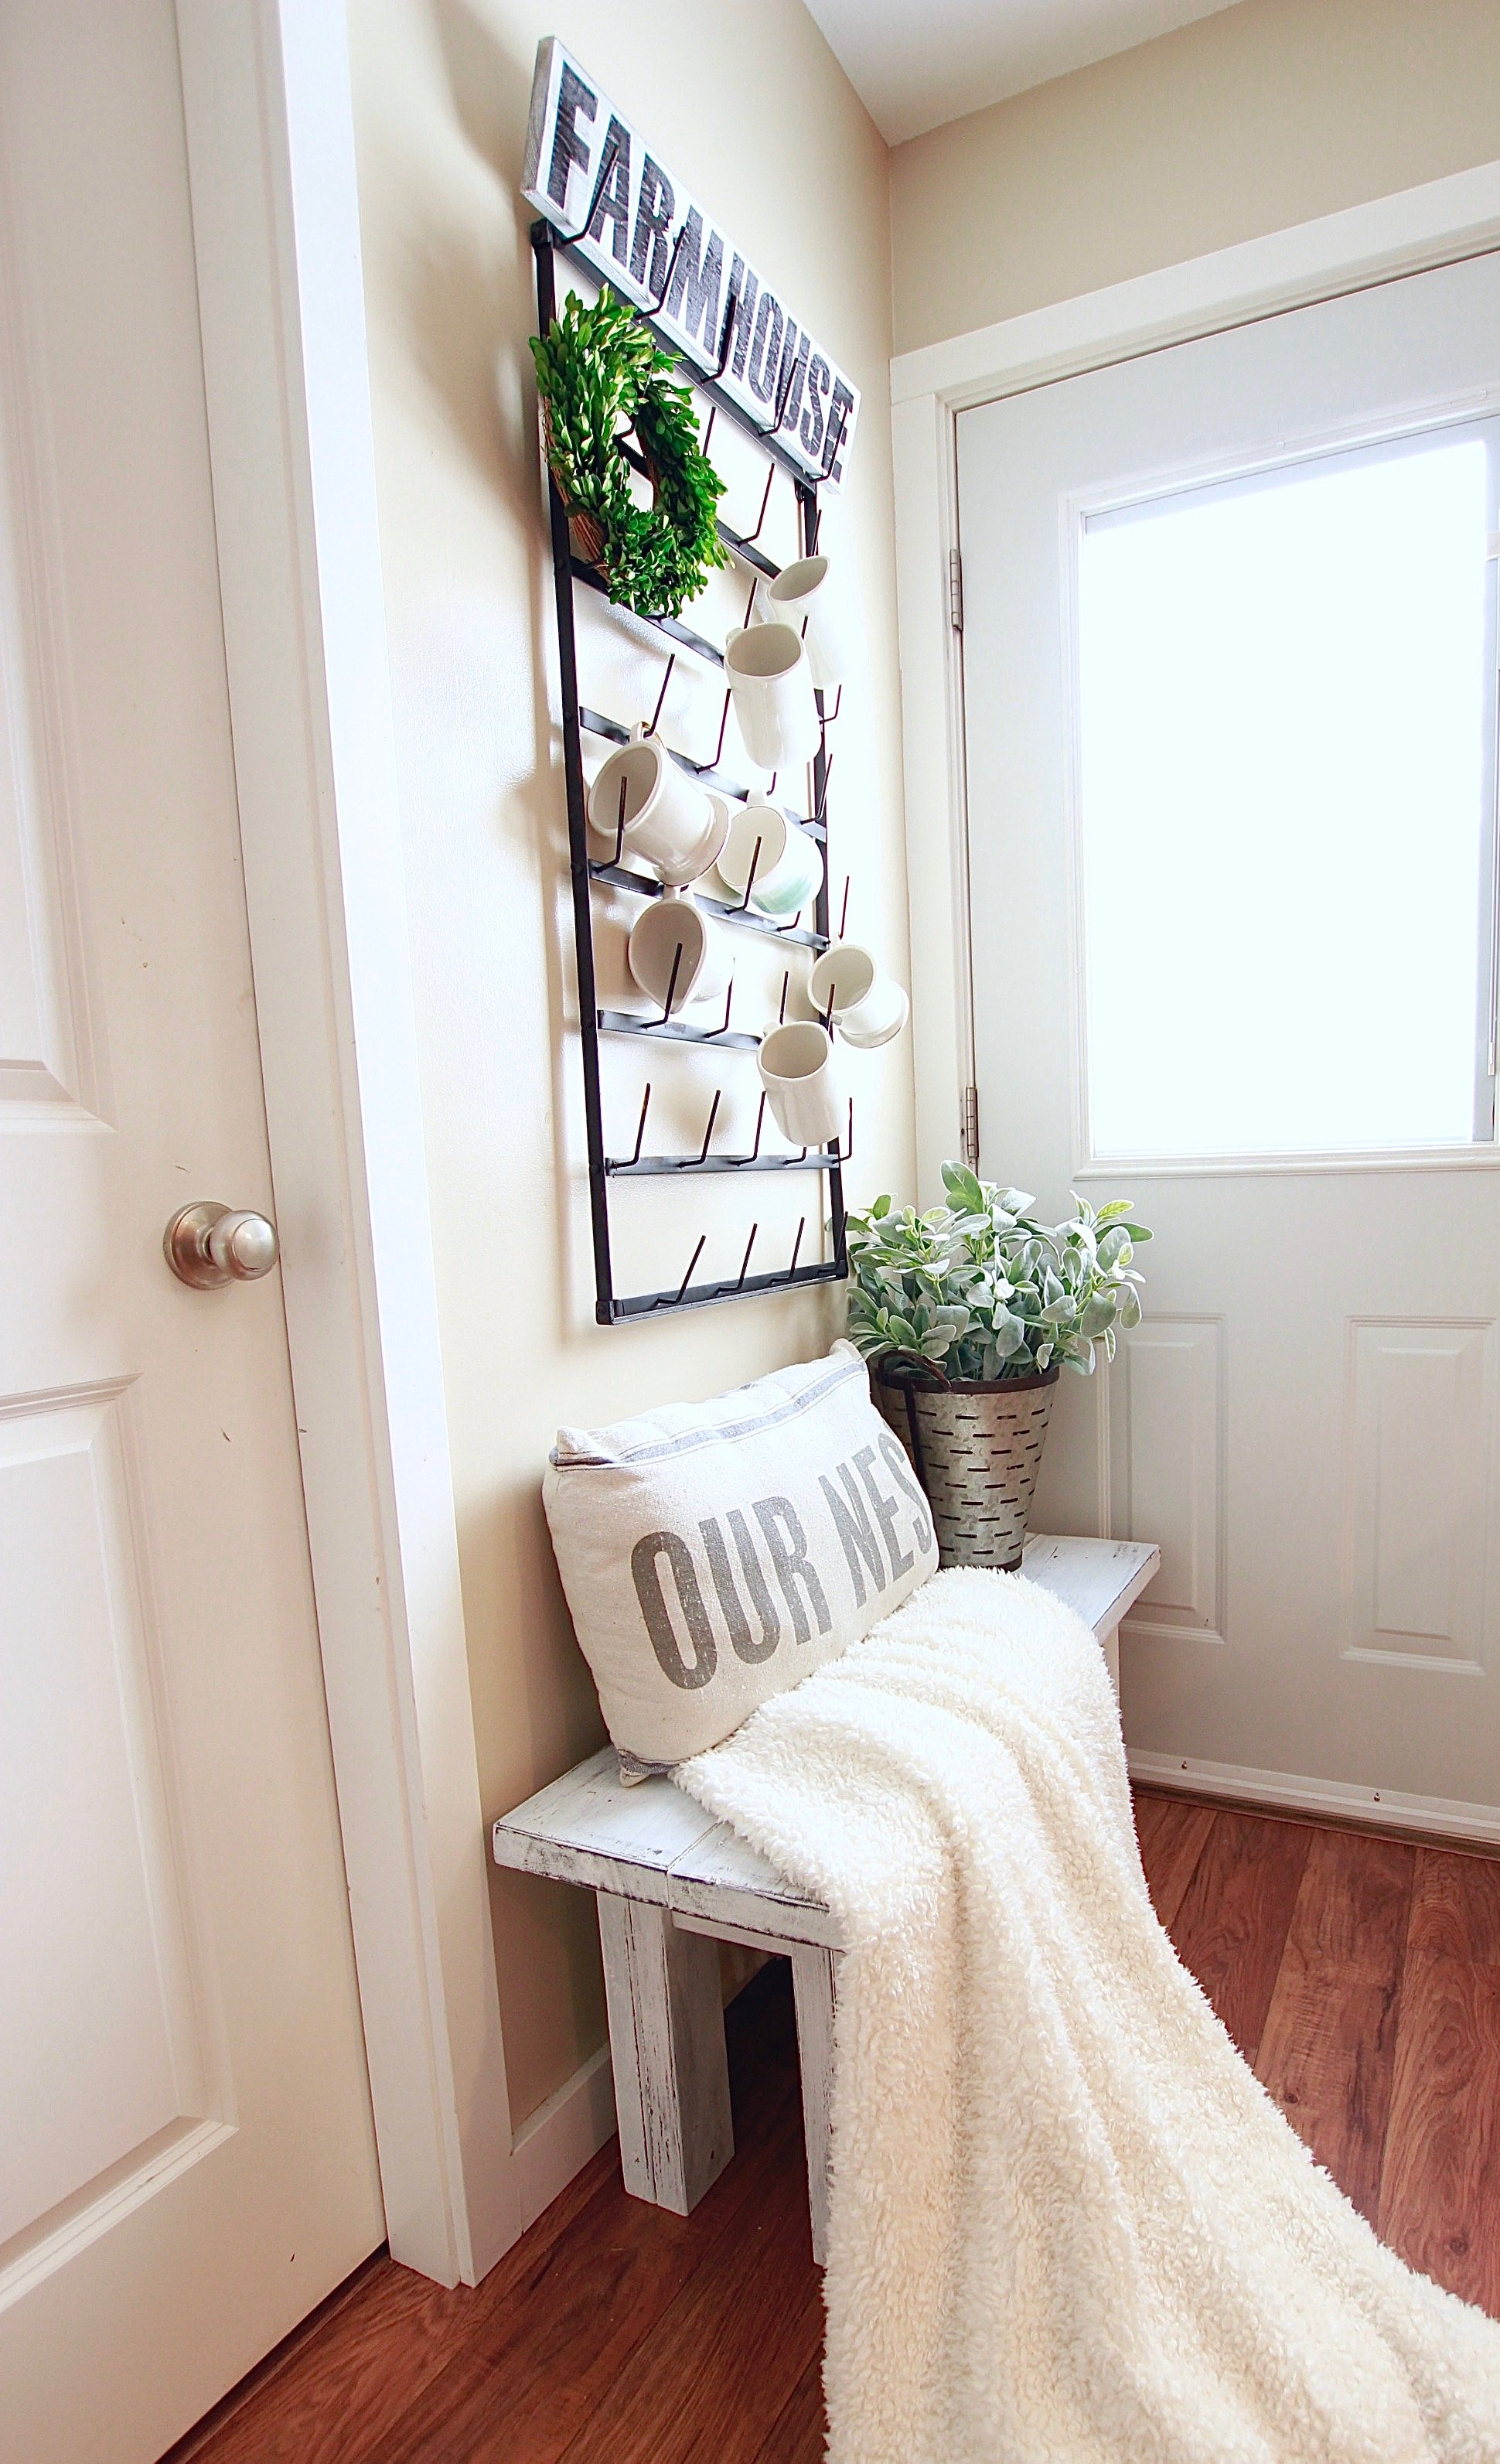 My Cute Little Farmhouse Decor Shop, I ship to all of Canada & USA www.theruggedrosoter.com